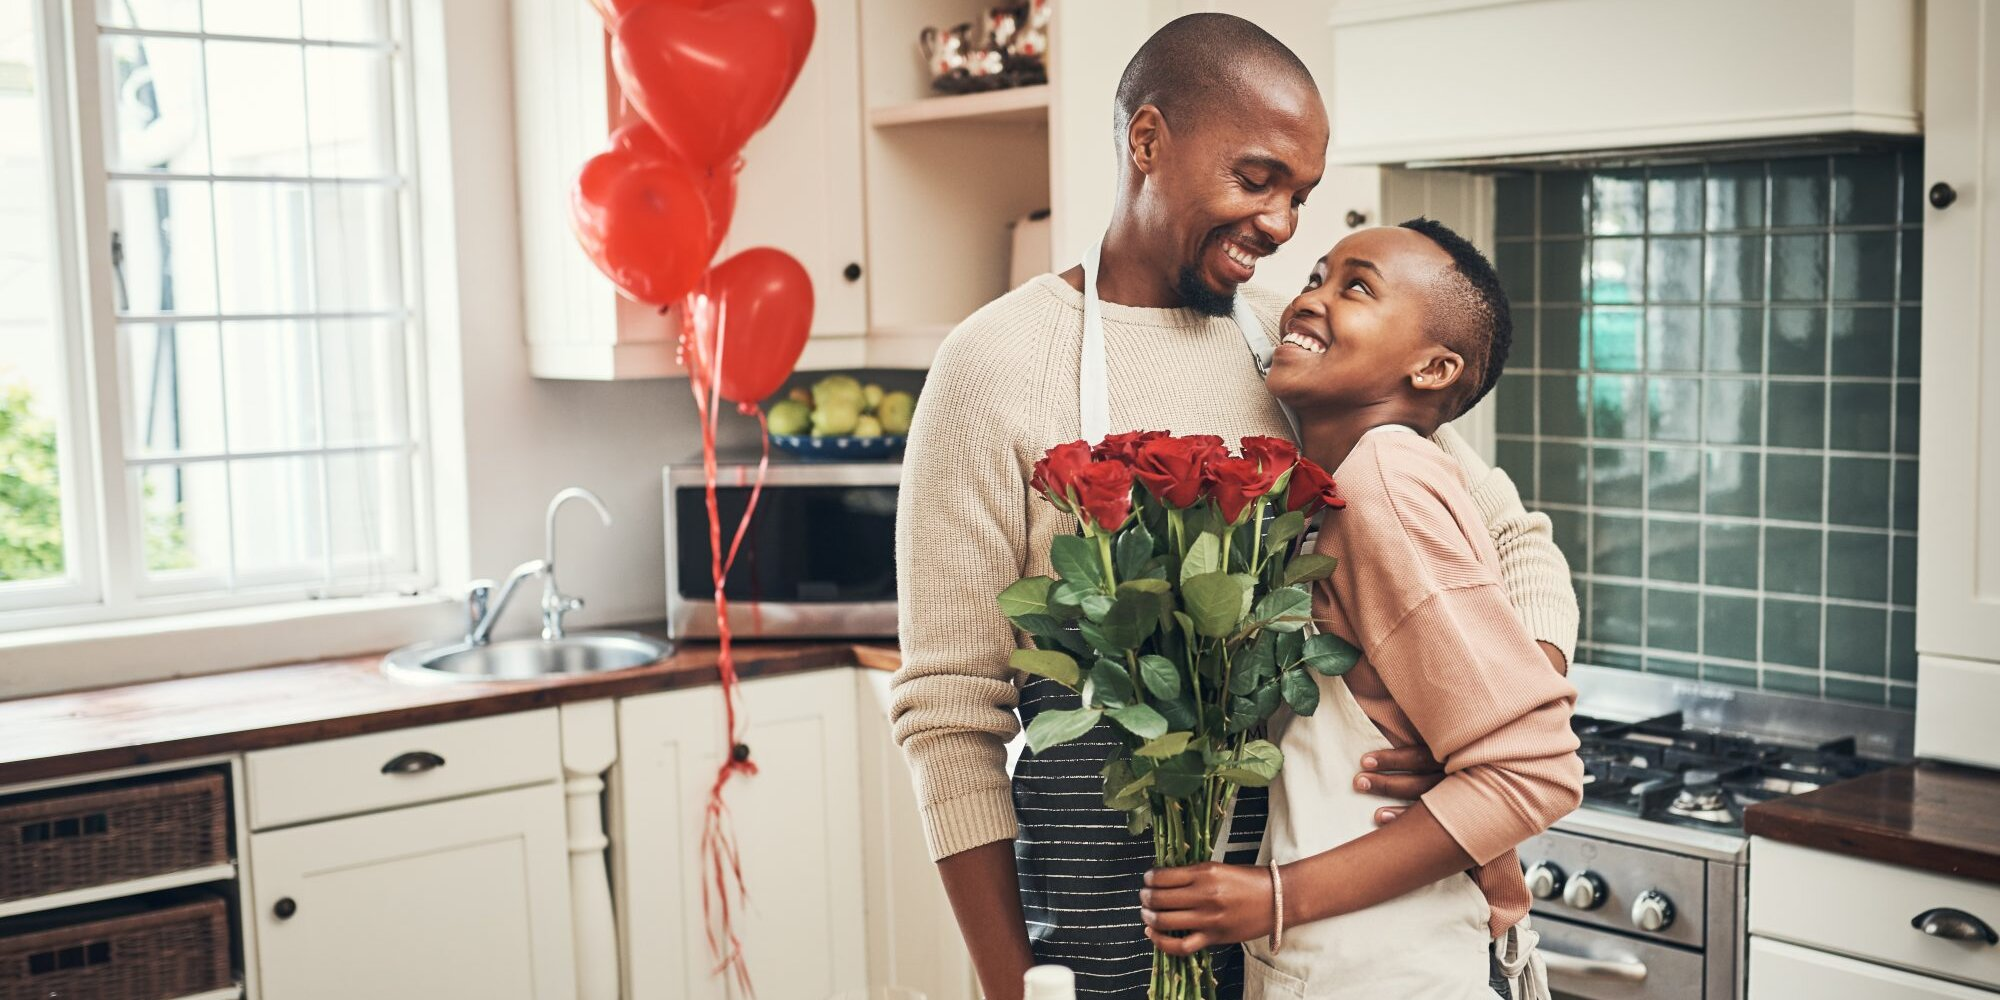 Here's How You Can Celebrate Valentine's Day Safely Amid the COVID-19 Pandemic